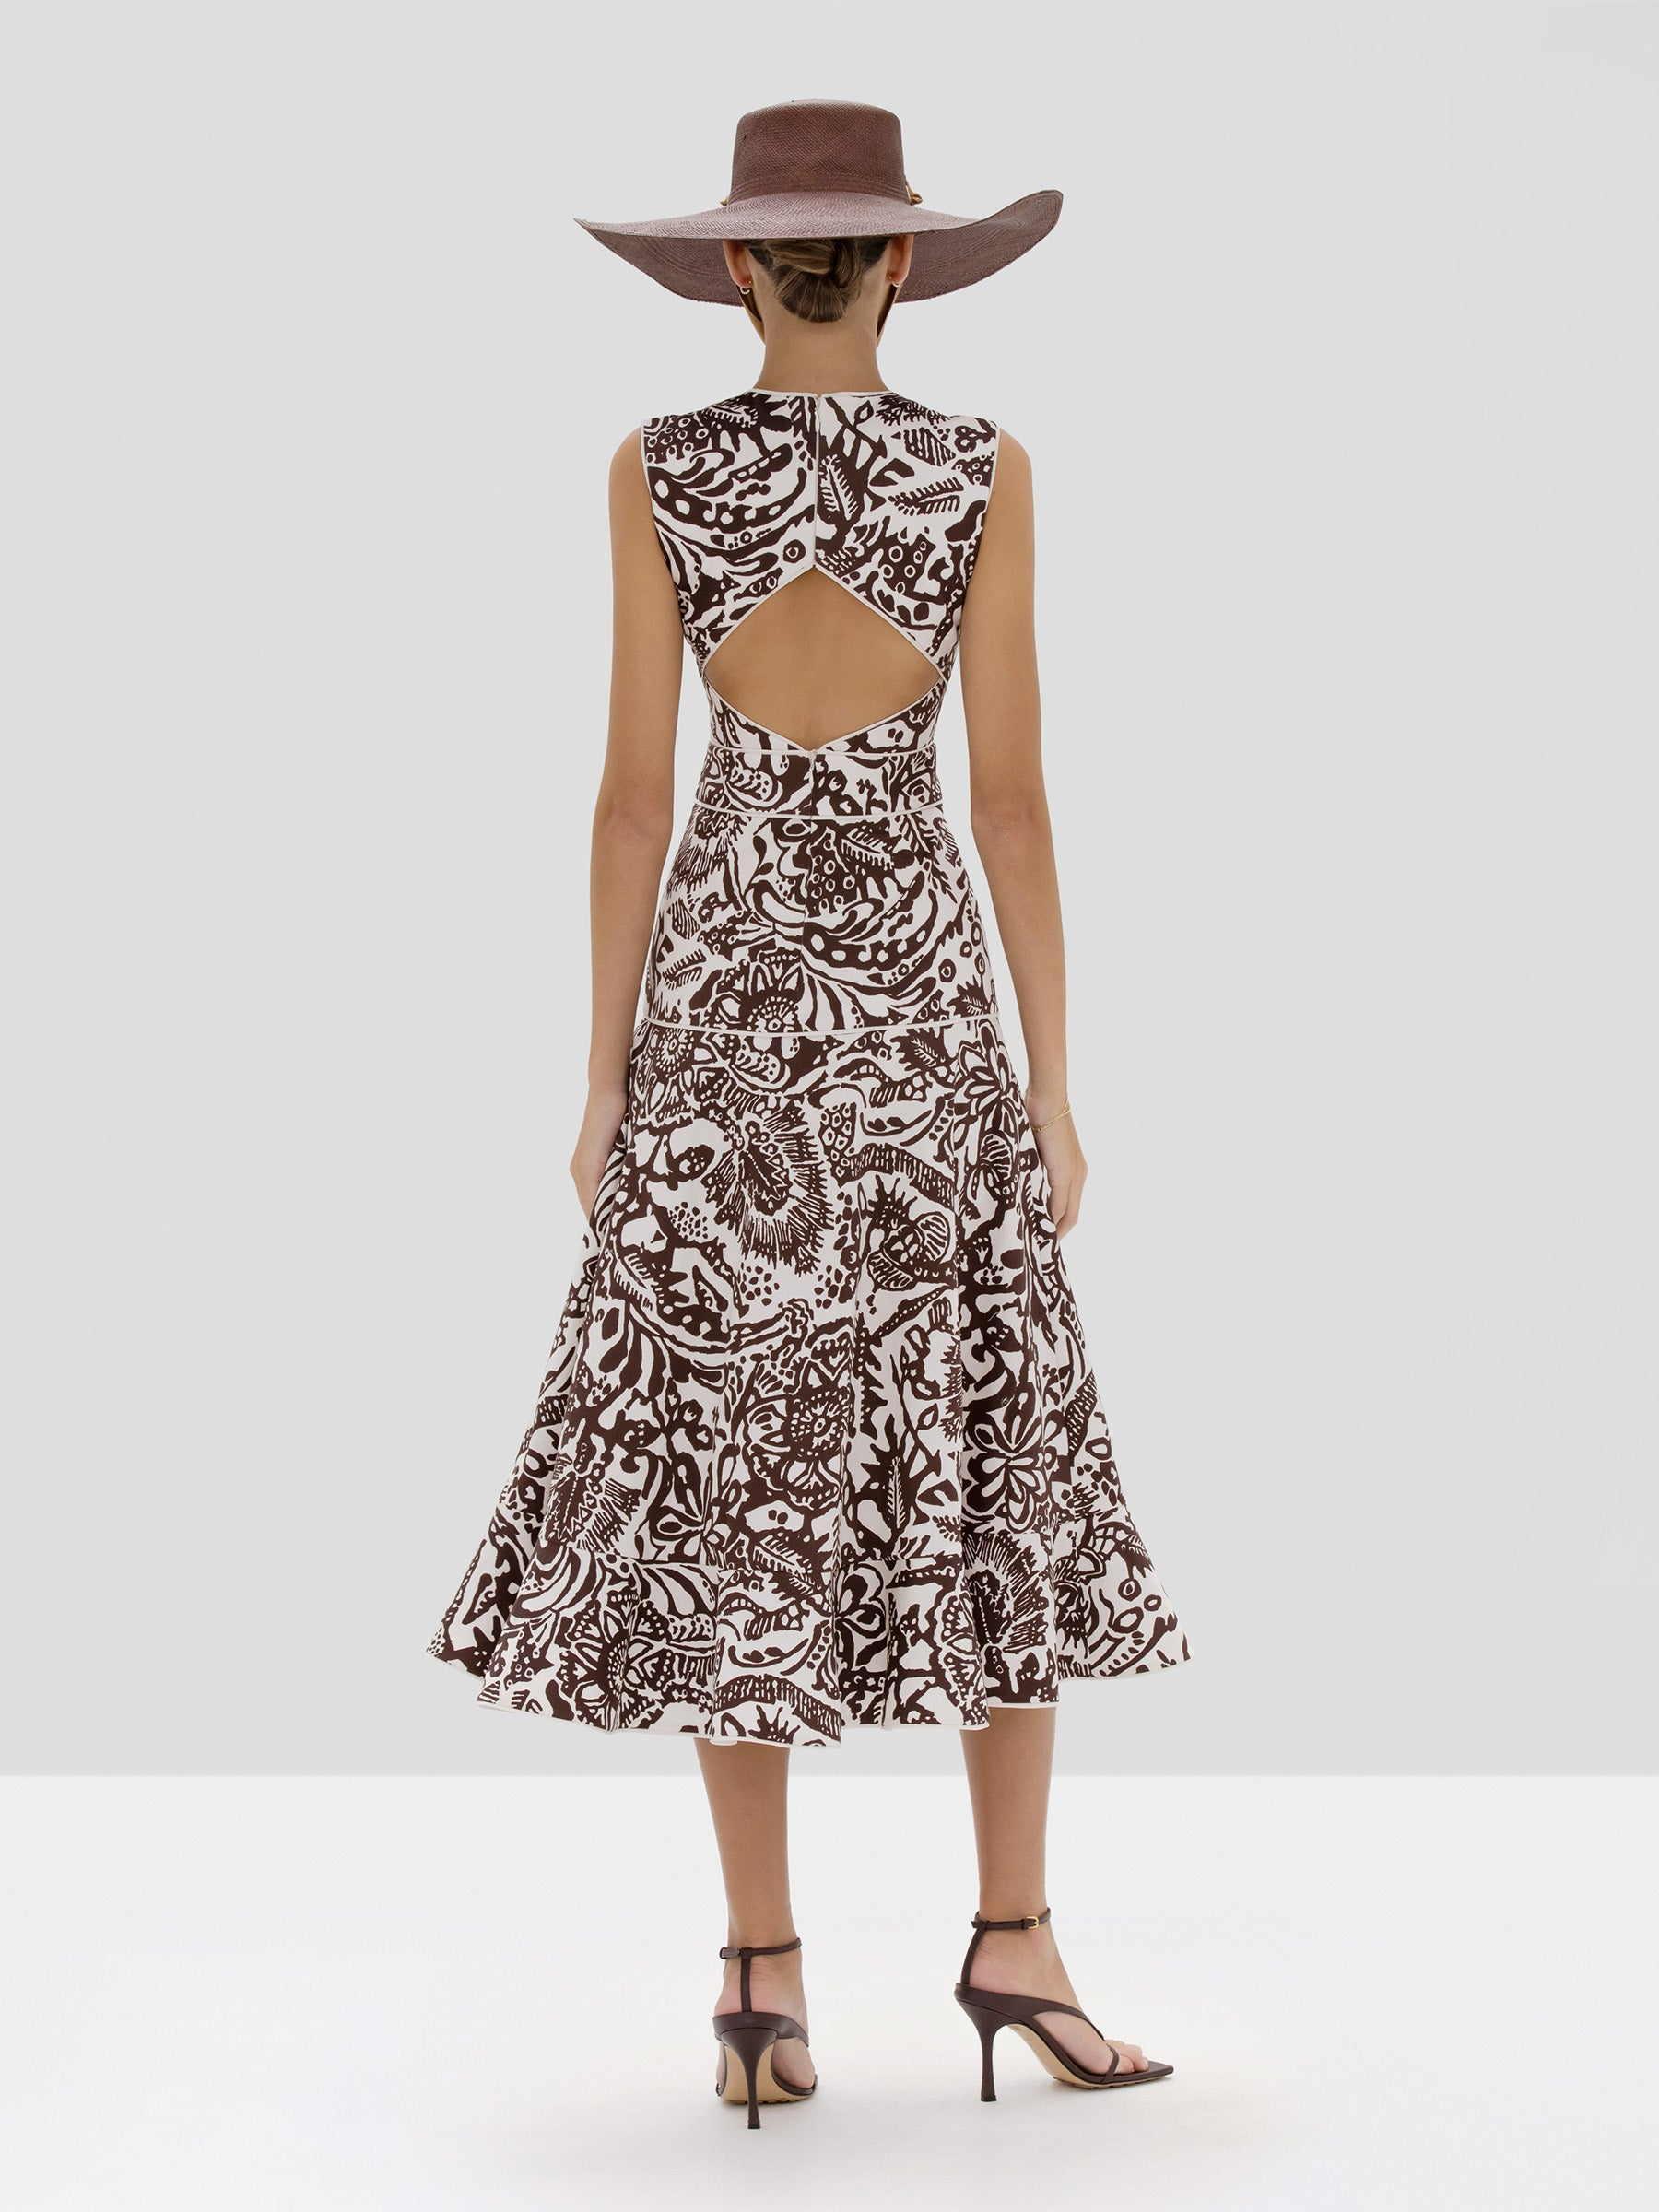 Alexis Marianna Dress in Tropical Brown from Spring Summer 2020 - Rear View